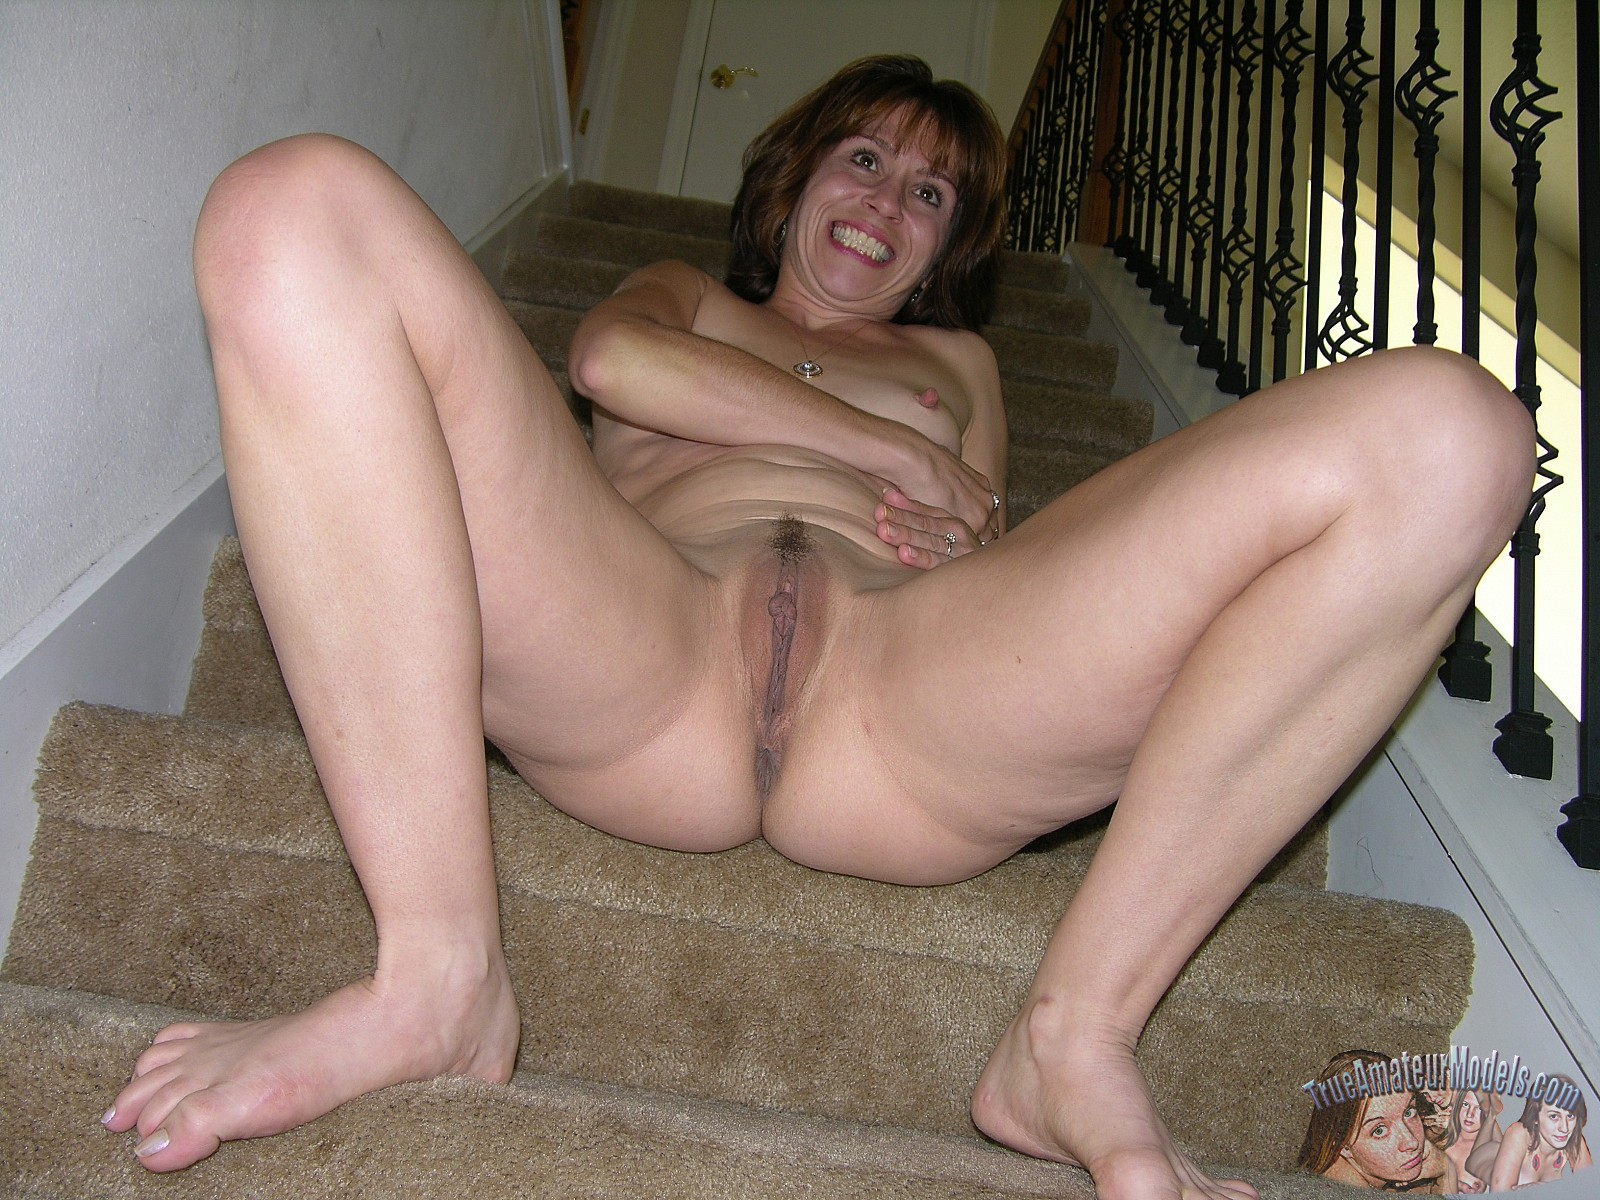 Woman Next Door Nude